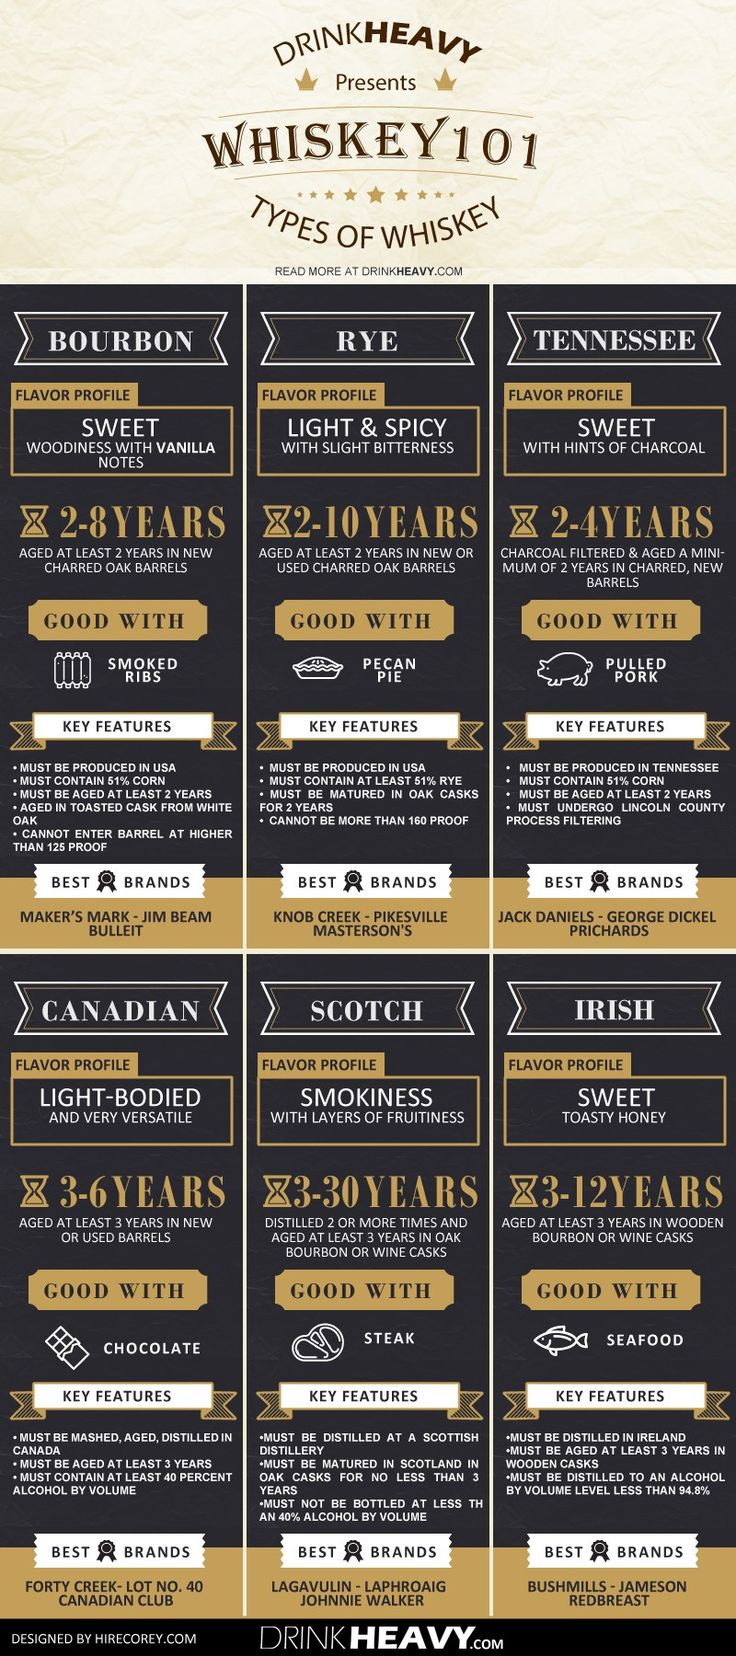 Drink up boys and girls. Today's graphic will not only inform, but you'll get to test your whiskey knowledge. How much do you know?